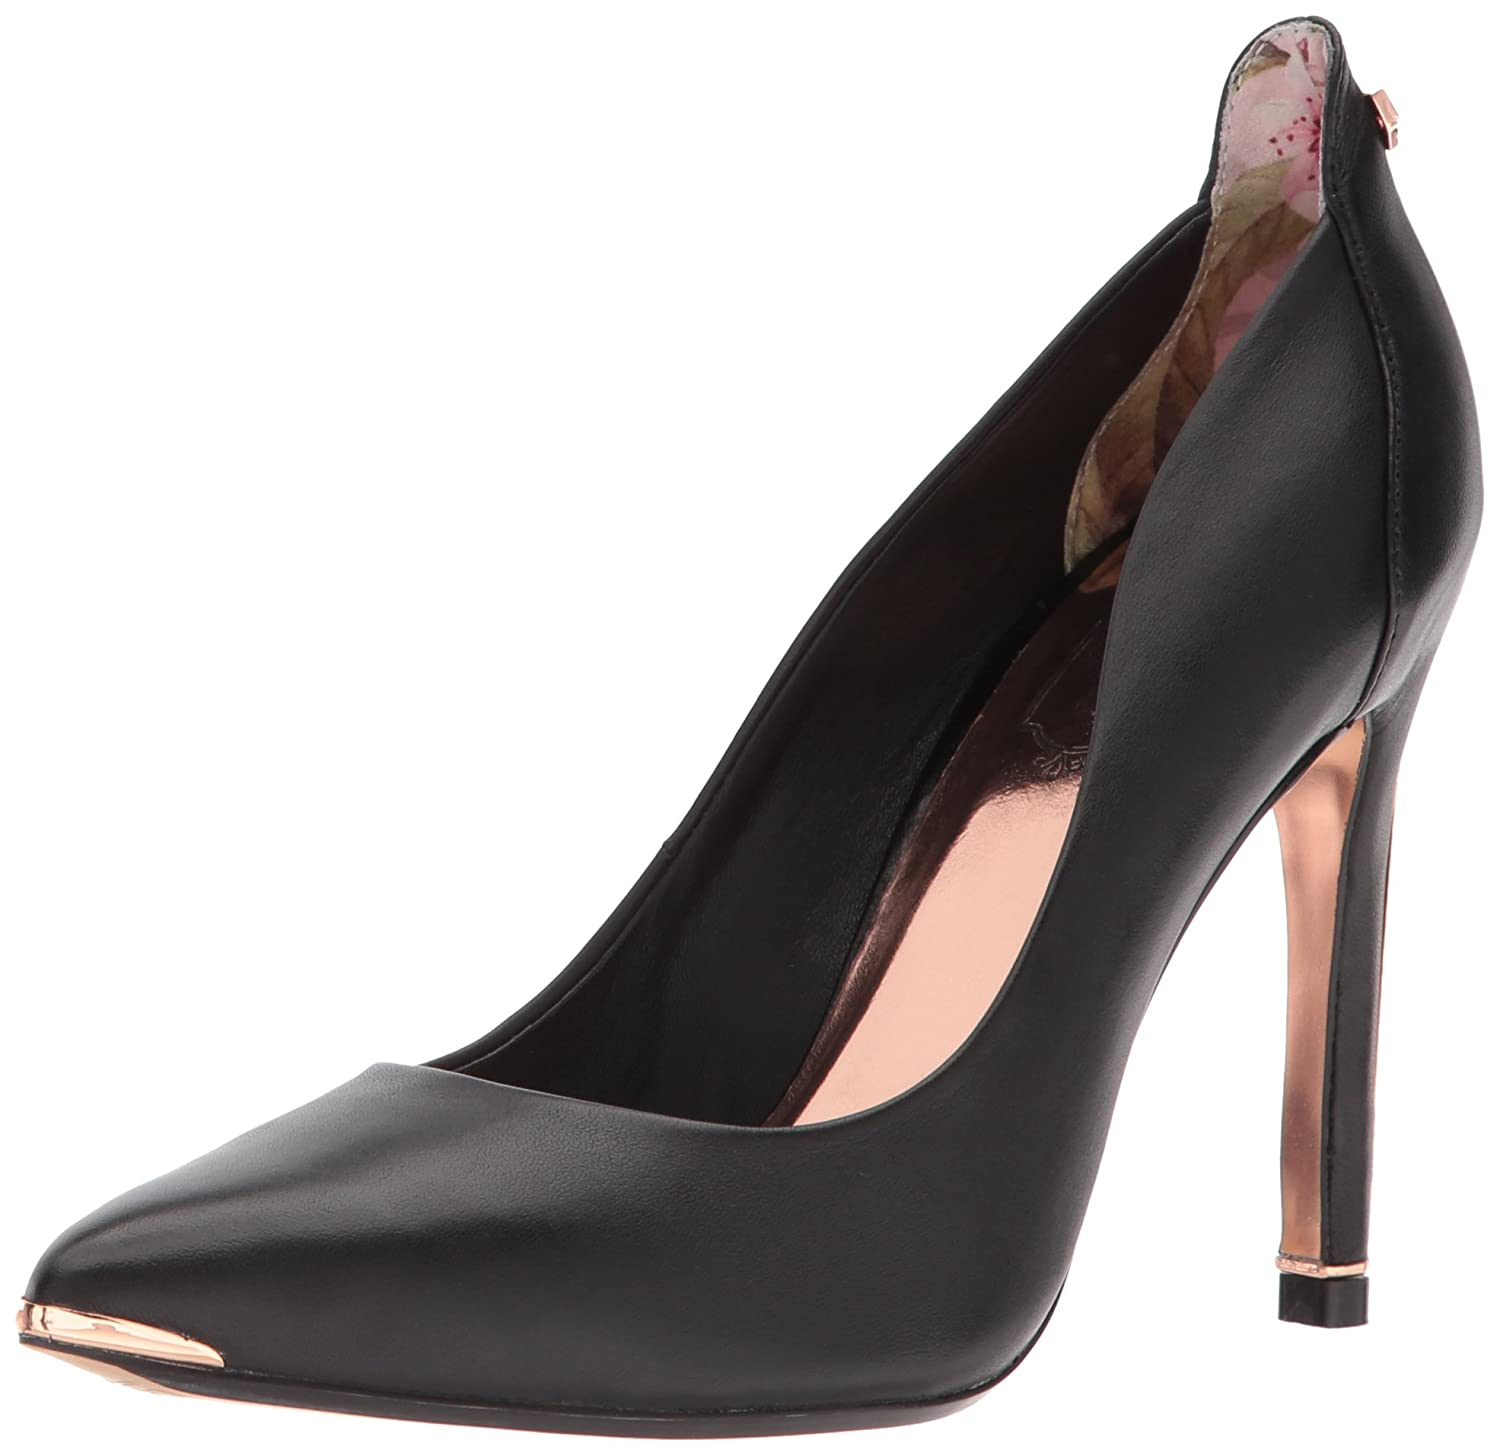 Ted Baker Women's Melisah Pump B0721F4VKL 7.5 B(M) US|Black